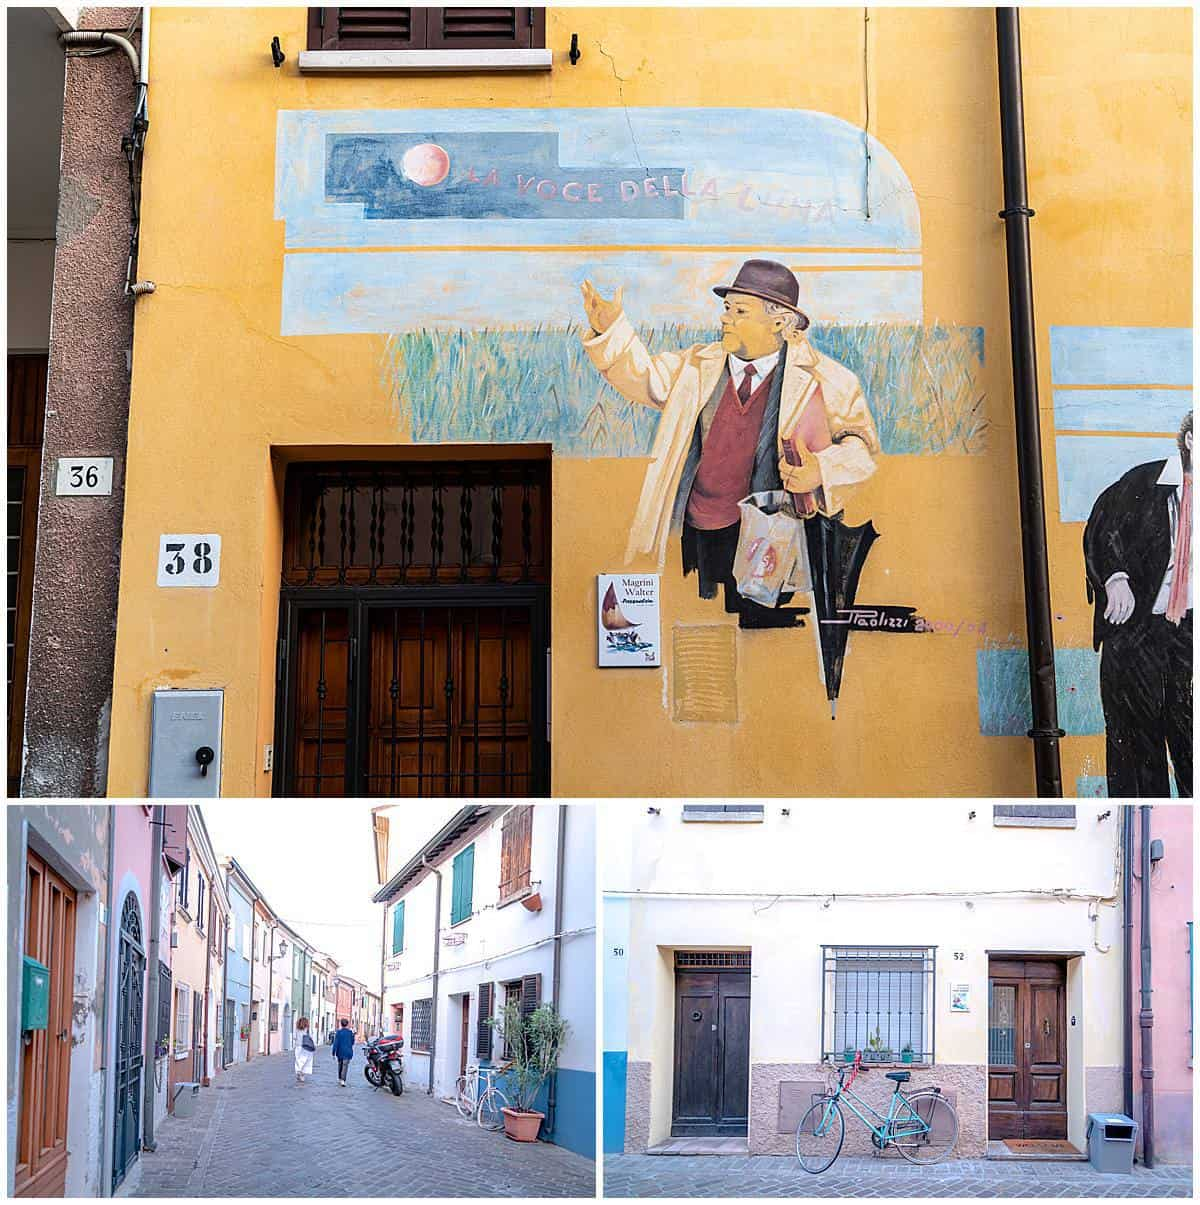 Italy - Emilia Romagna - Rimini-Borgo - Fisherman murals in the Borgo